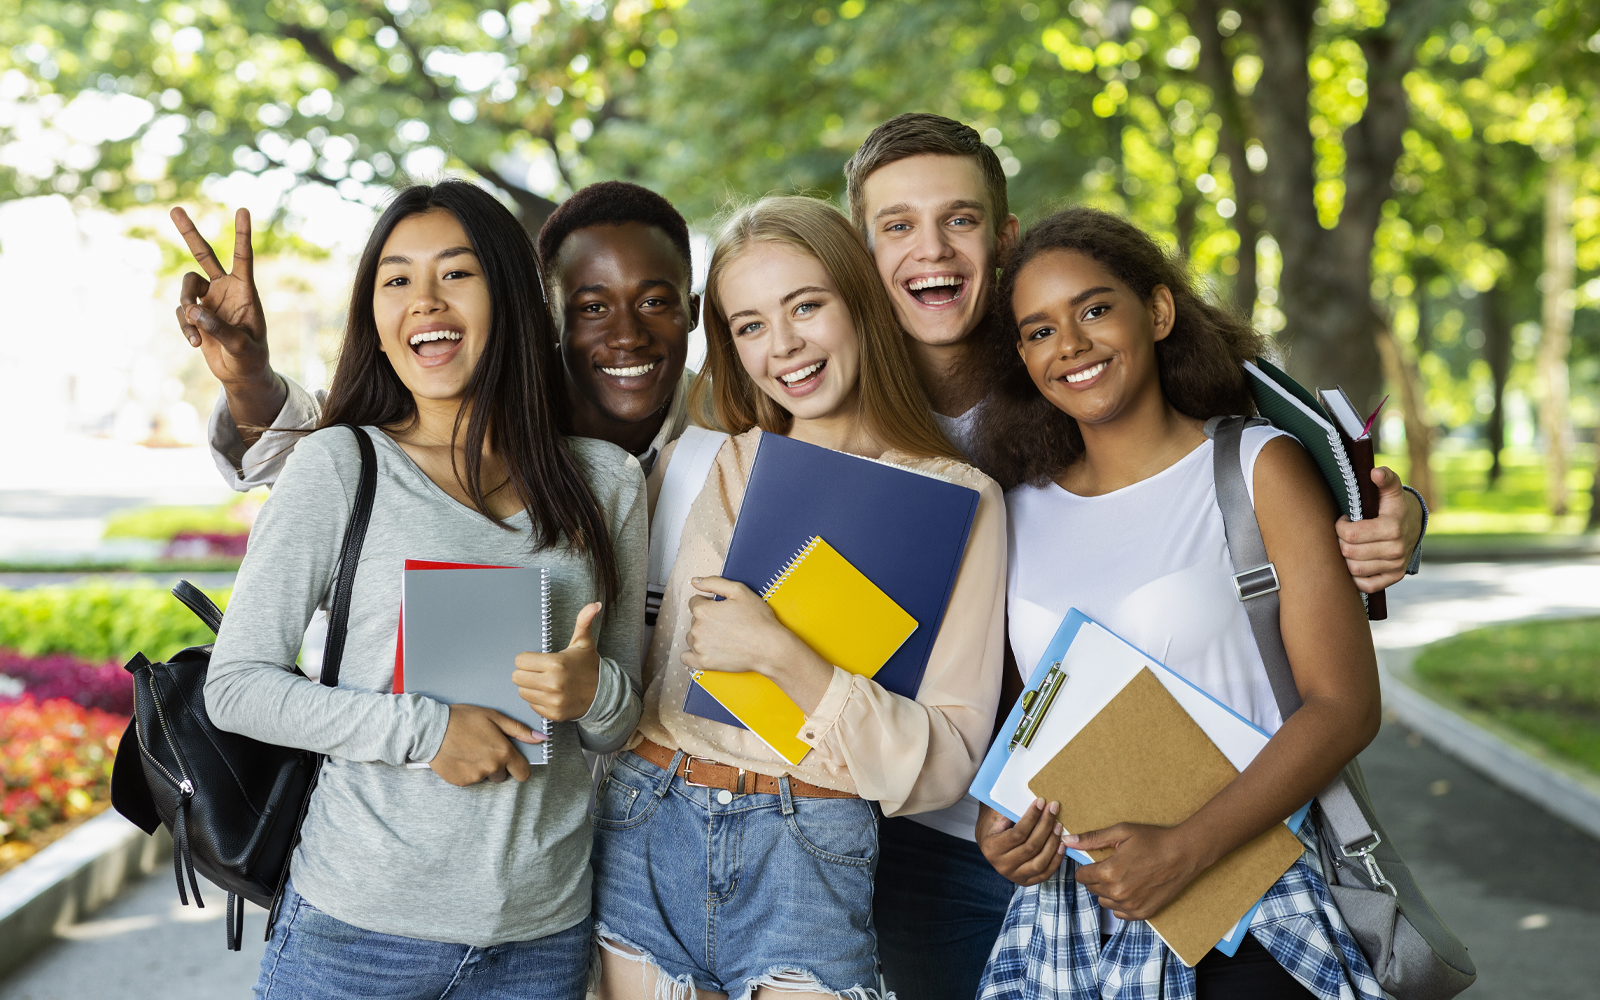 group of teens smiling and laughing